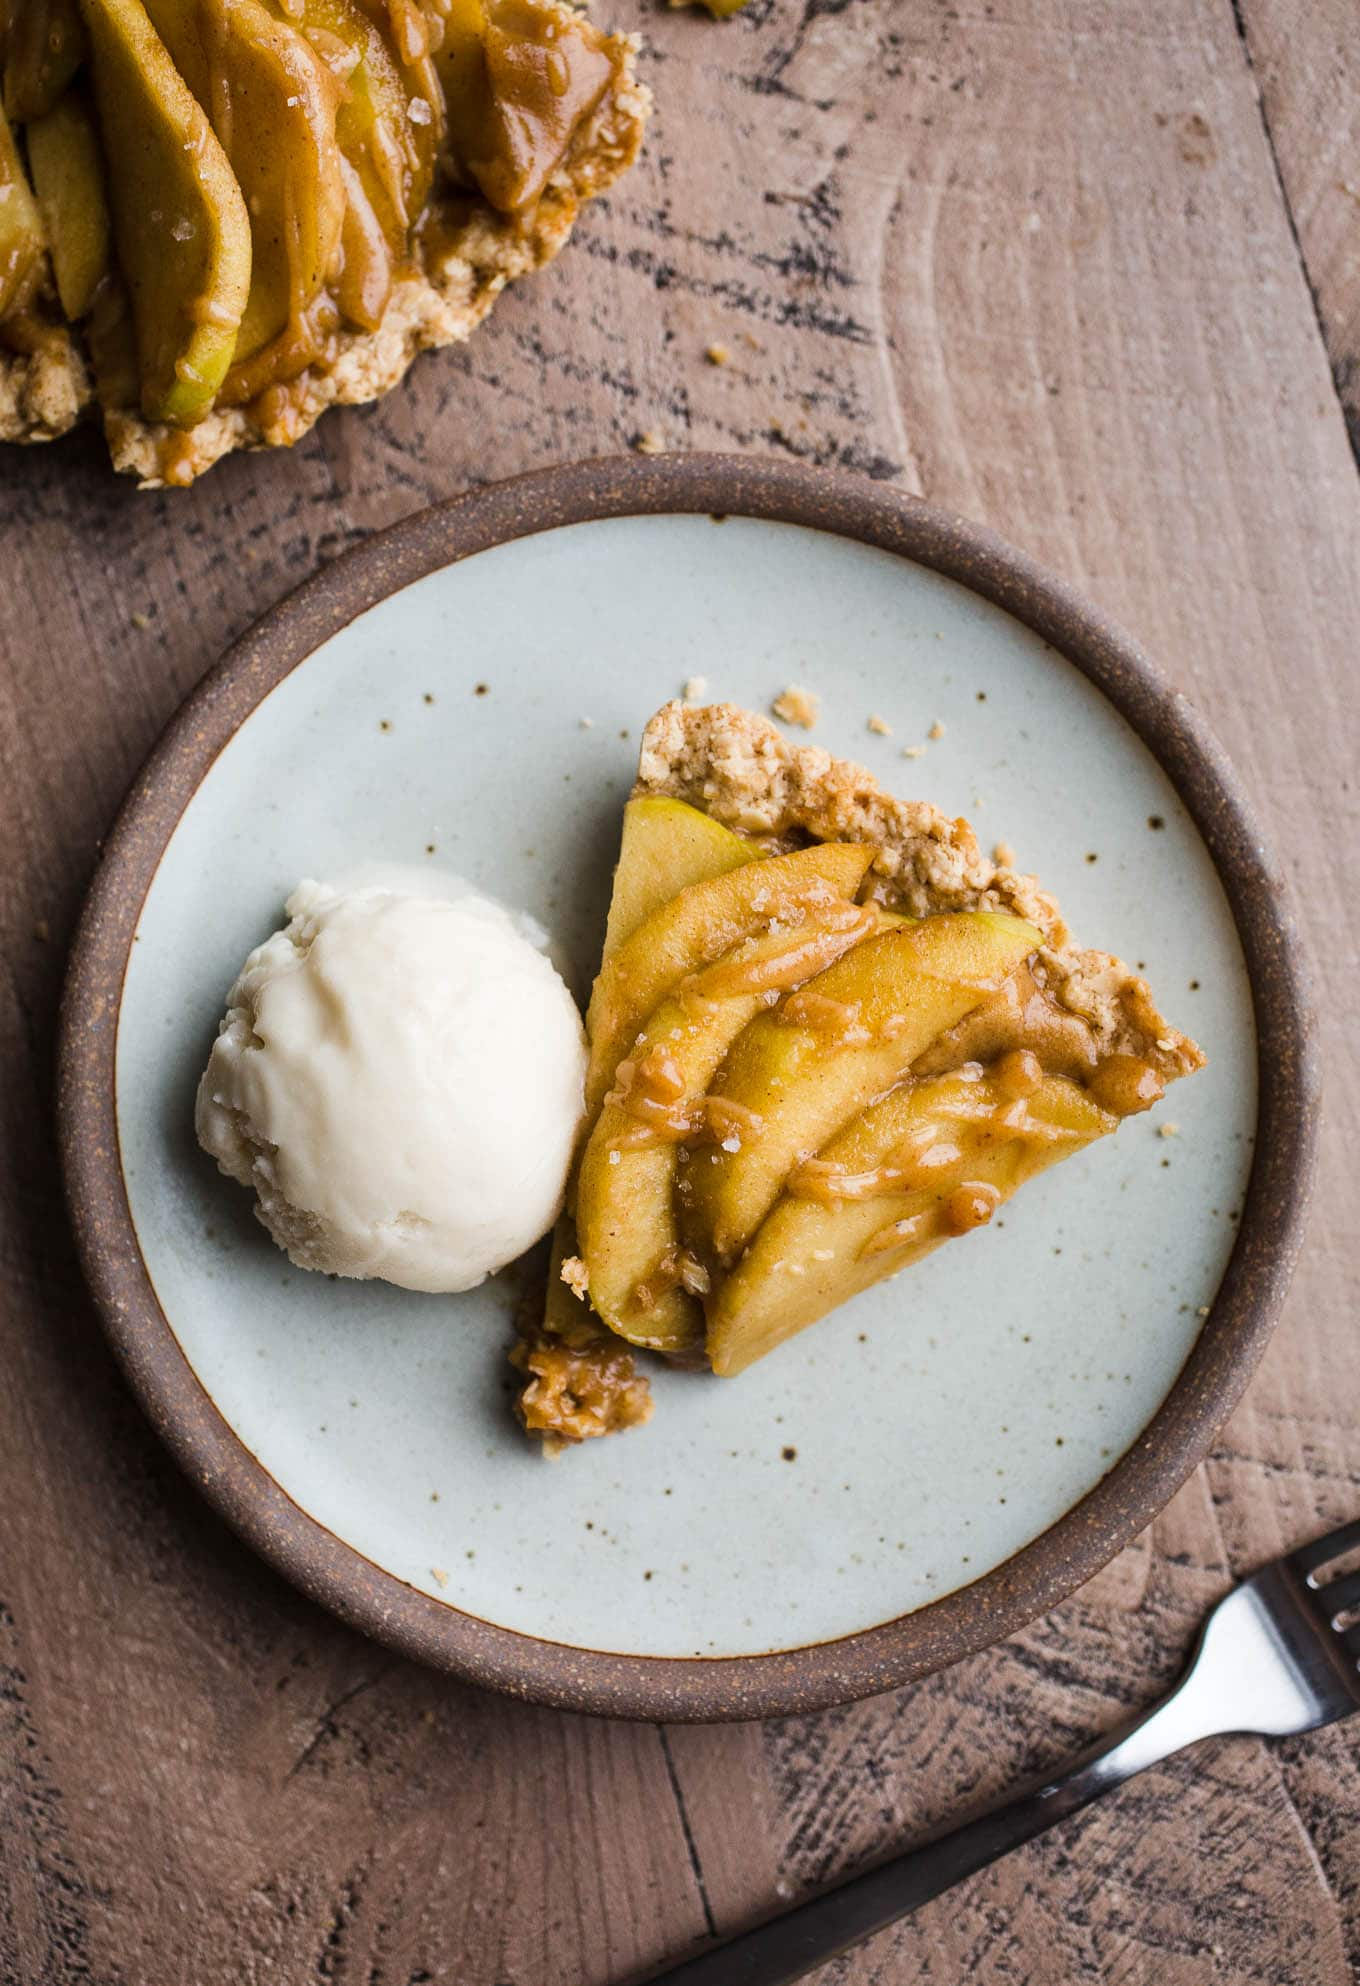 Gluten-Free Apple Tart with Oatmeal Cookie Crust is an easy dessert recipe made with an oat flour crust, a layer of date caramel, and topped with cinnamon apples. Prepare the crust and date caramel ahead of time for easier assembly. Vegan